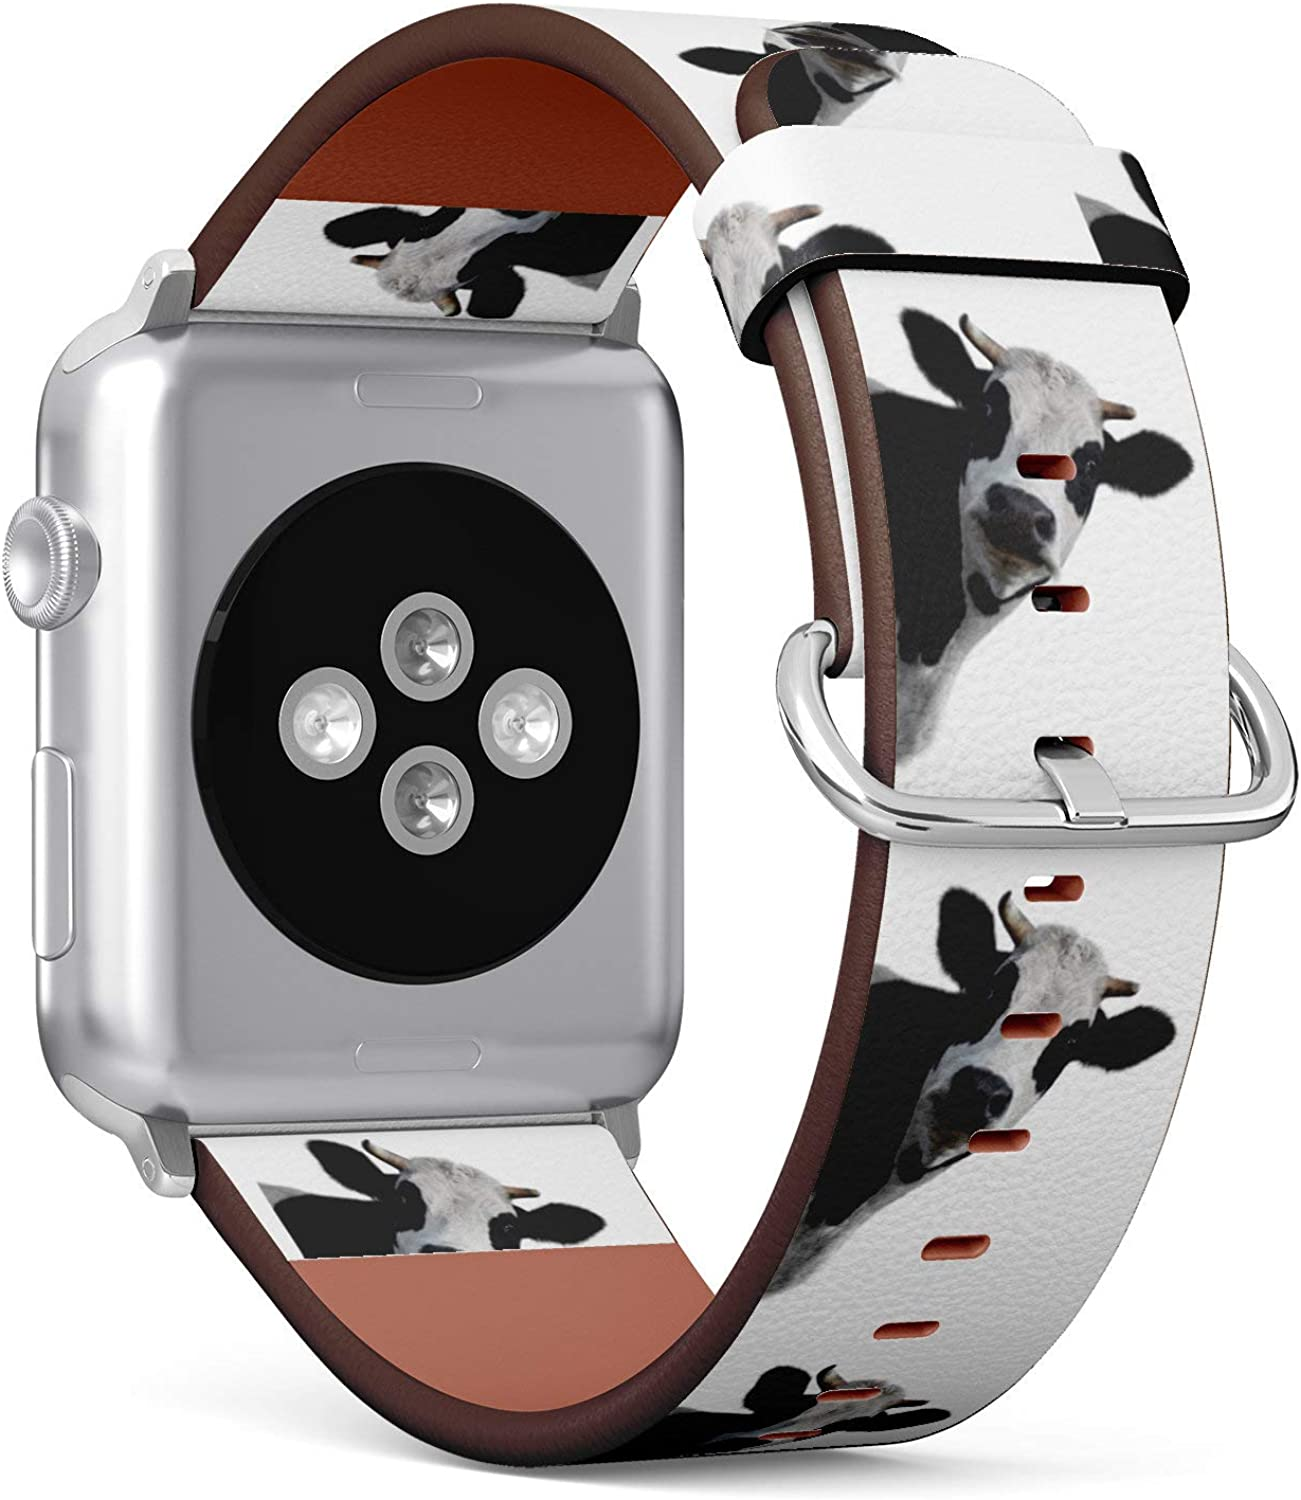 (Funny Milk Cow) Patterned Leather Wristband Strap for Apple Watch Series 4/3/2/1 gen,Replacement for iWatch 38mm / 40mm Bands